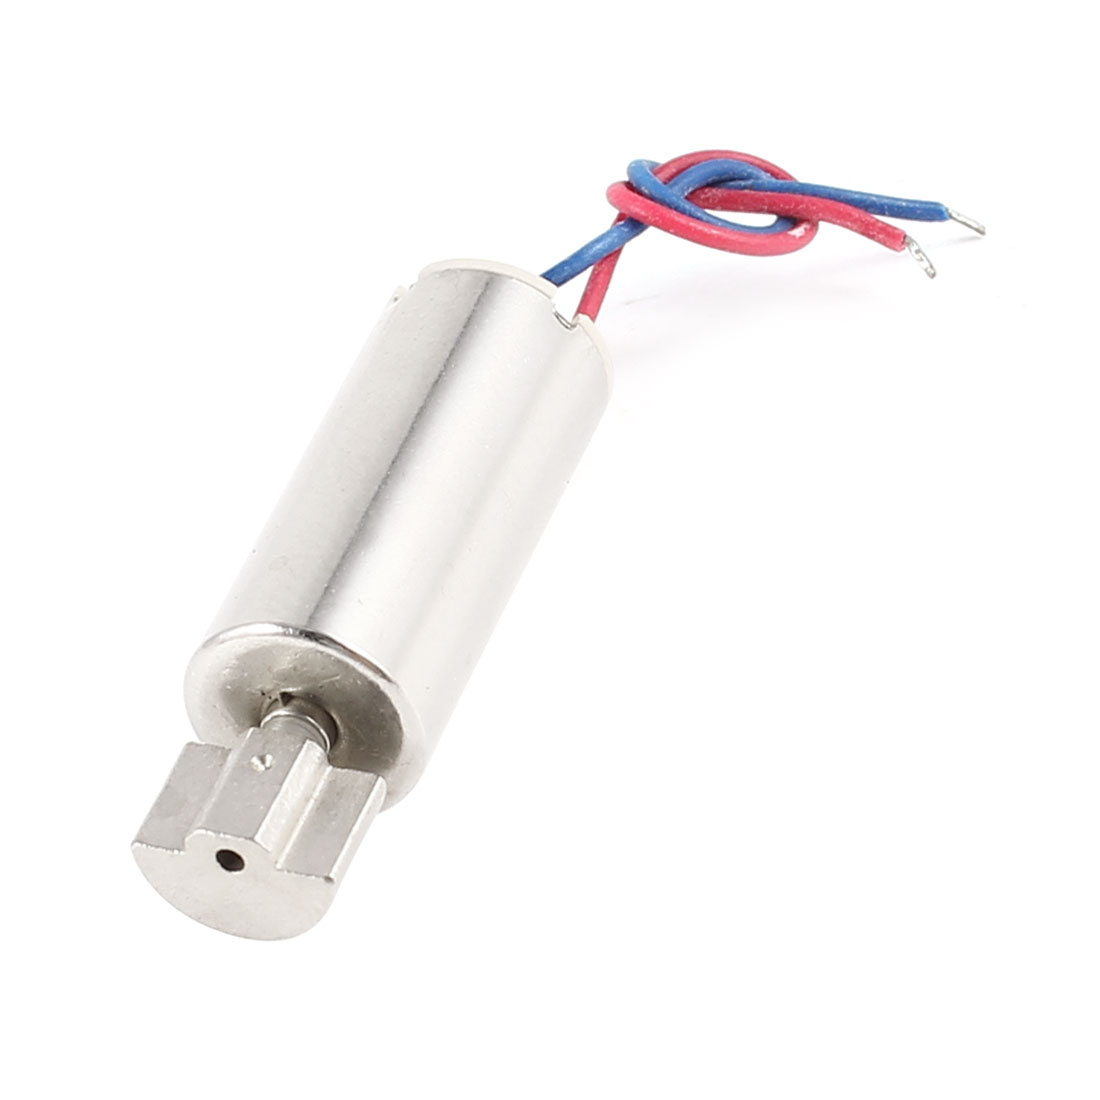 Cell Phone 7mmx16mm Metal Shell Micro Vibration Motor DC 3.5V 8000RPM